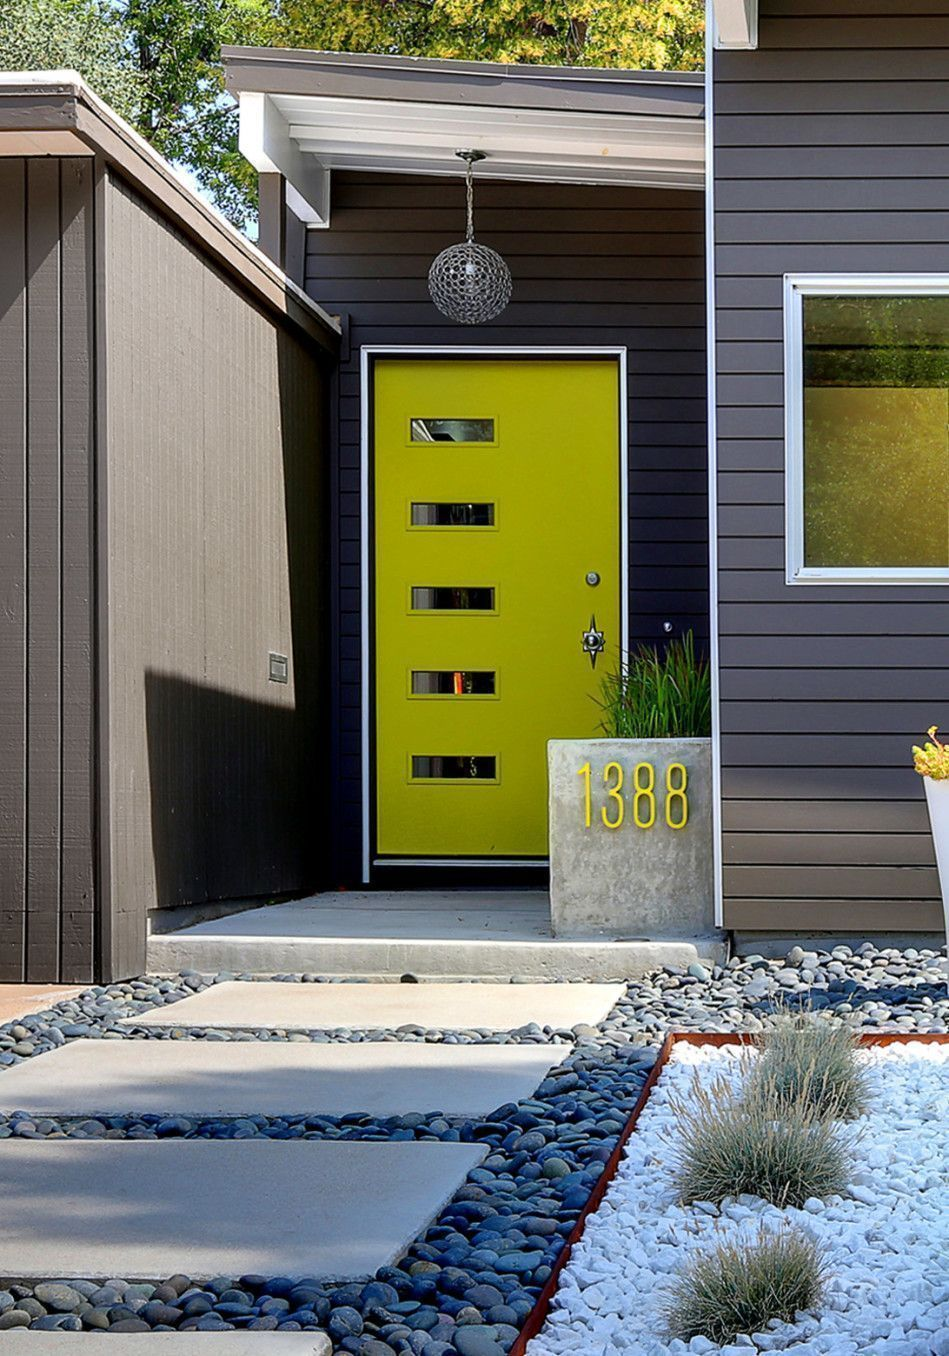 Best front door paint colors popular colors to paint an entry door most exterior paint colors and materials lean toward neutral shades so a colorful